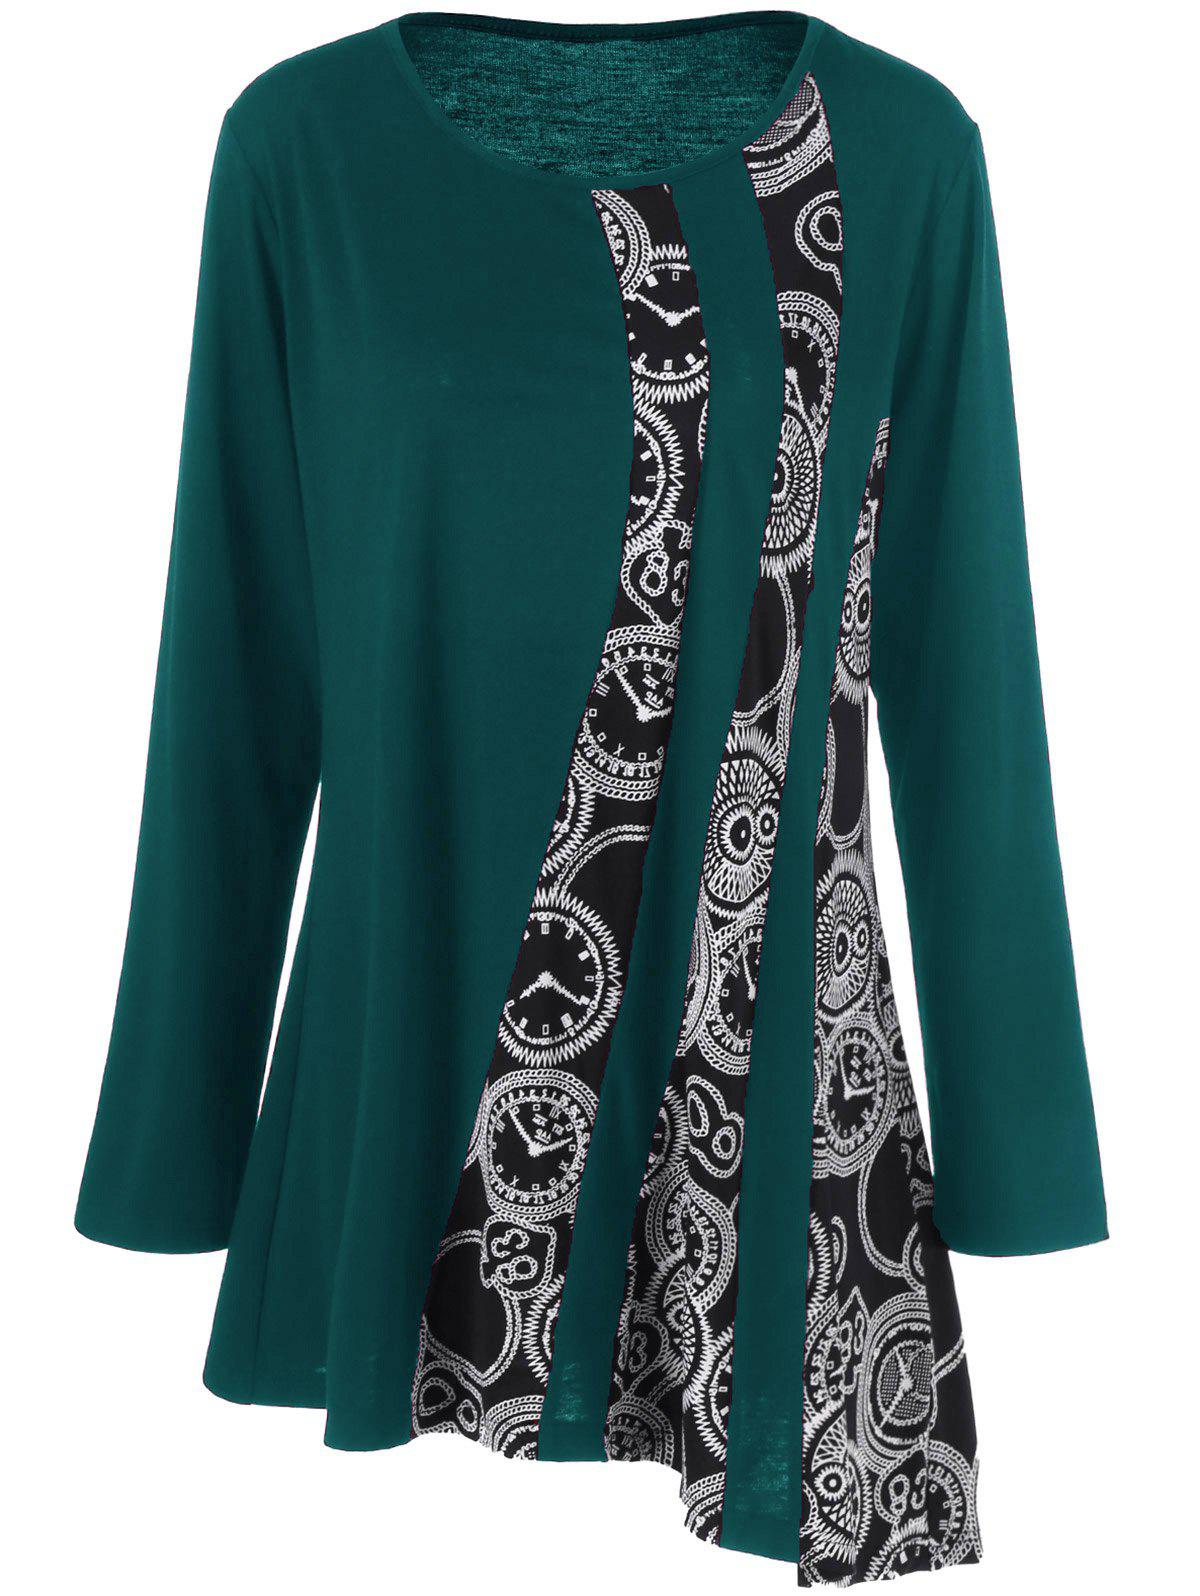 Plus Size Printed Asymmetric Tunic T-ShirtWOMEN<br><br>Size: 5XL; Color: BLACKISH GREEN; Material: Polyester,Spandex; Shirt Length: Long; Sleeve Length: Full; Collar: Scoop Neck; Style: Fashion; Season: Fall,Spring; Pattern Type: Print; Weight: 0.3200kg; Package Contents: 1 x T-Shirt;